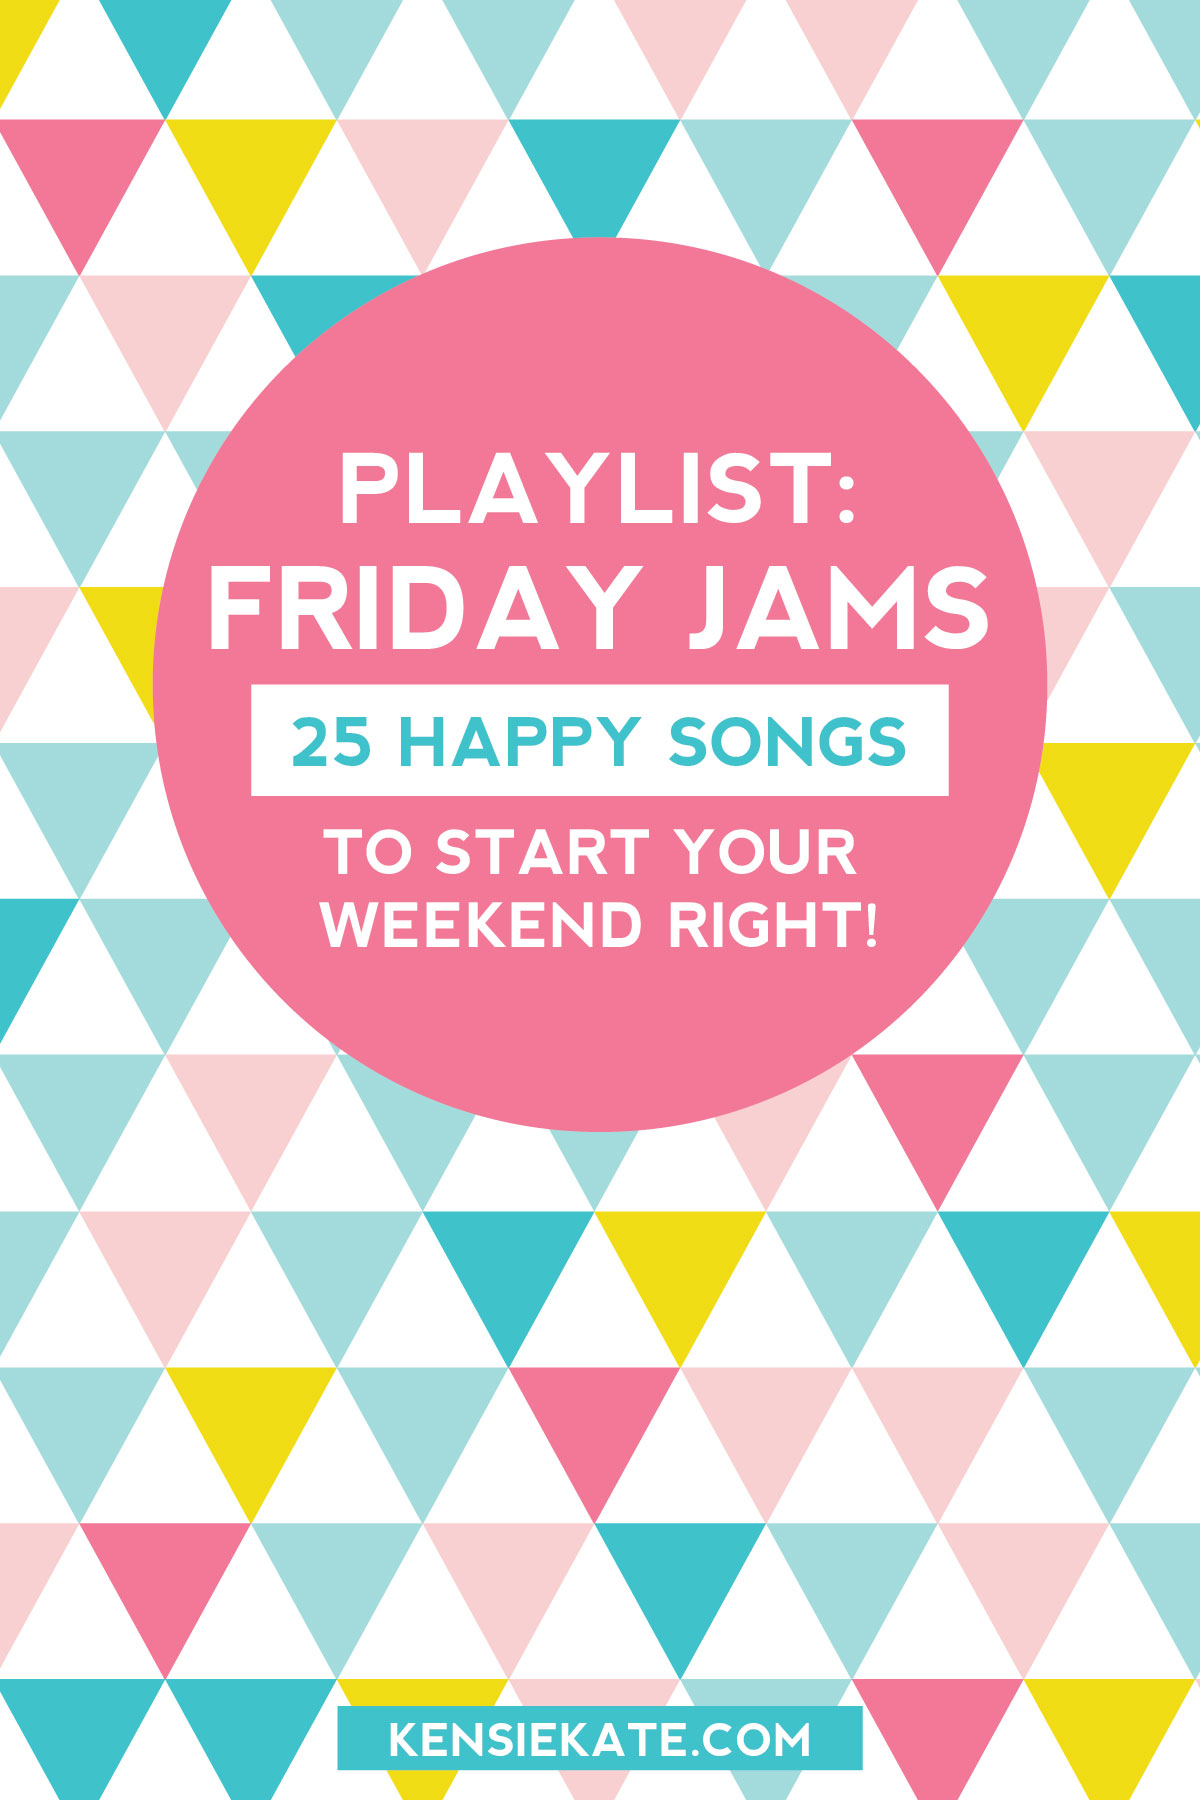 Kensie Kate | Super happy playlist perfect for the weekend!